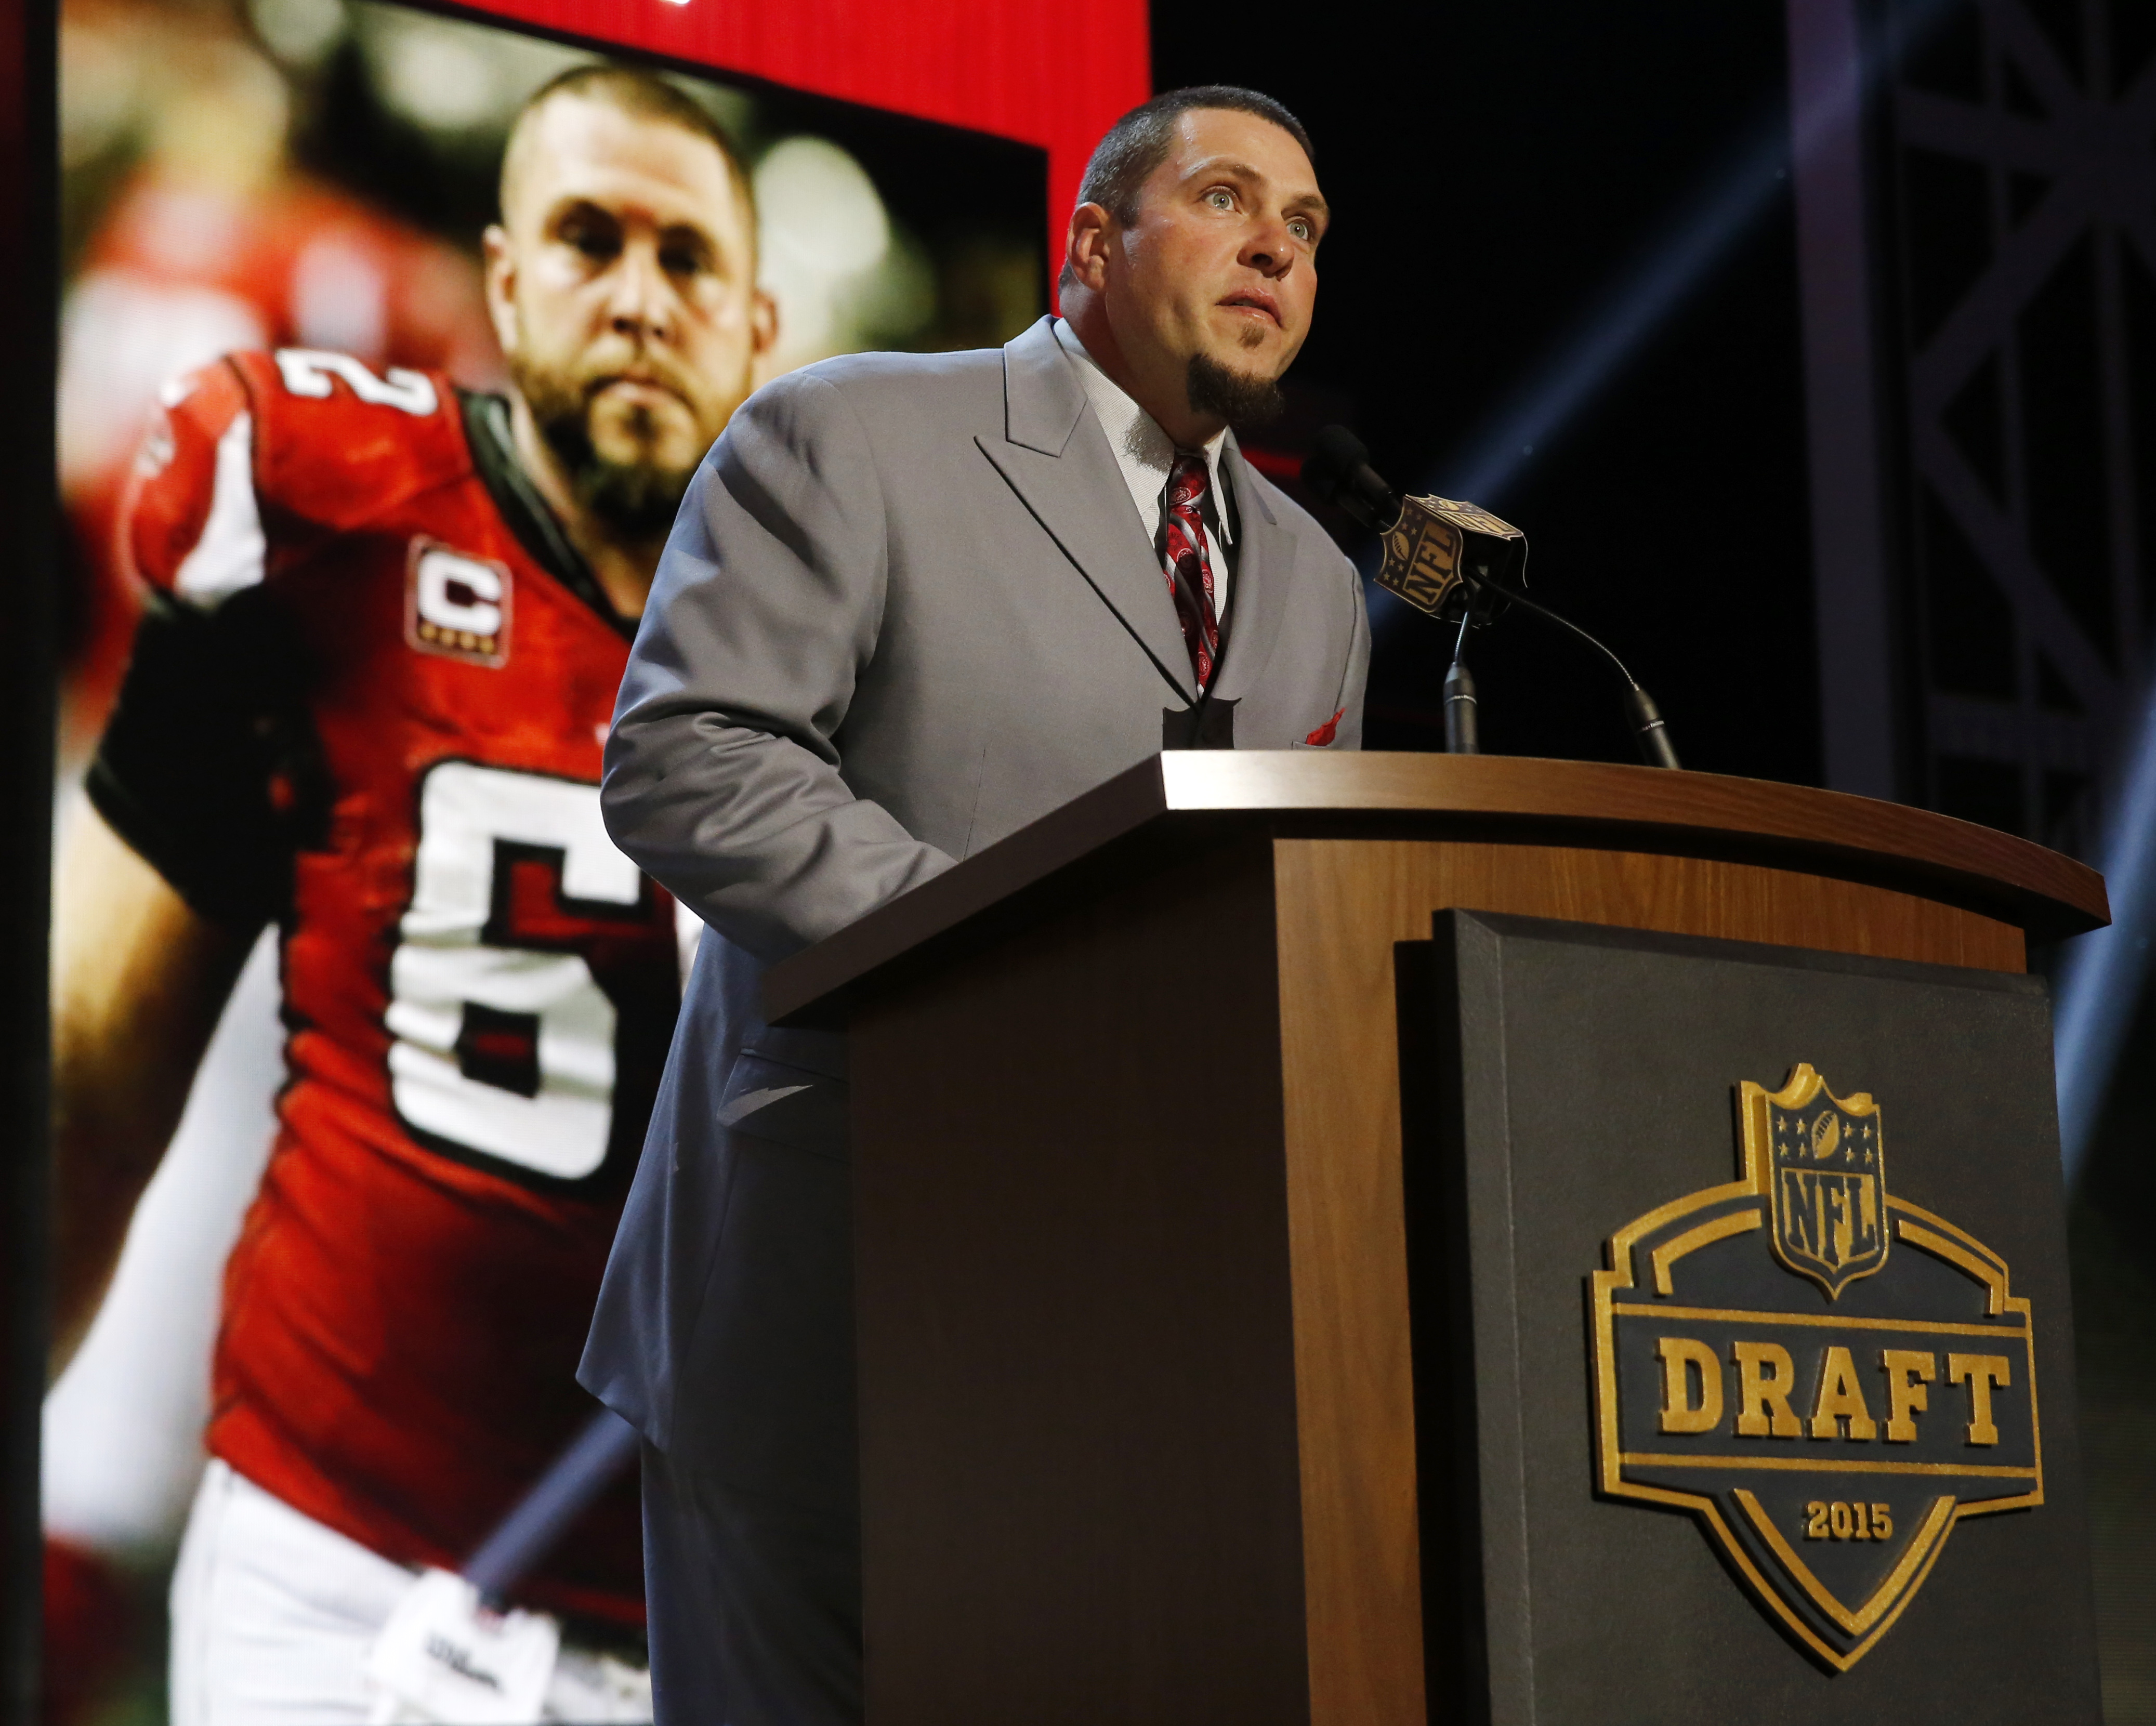 Former Atlanta Falcons center Todd McClure announces that the Falcons selects LSU defensive back Jalen Collins as the 42nd pick in the second round of the 2015 NFL Football Draft,  Friday, May 1, 2015, in Chicago. (AP Photo/Charles Rex Arbogast)